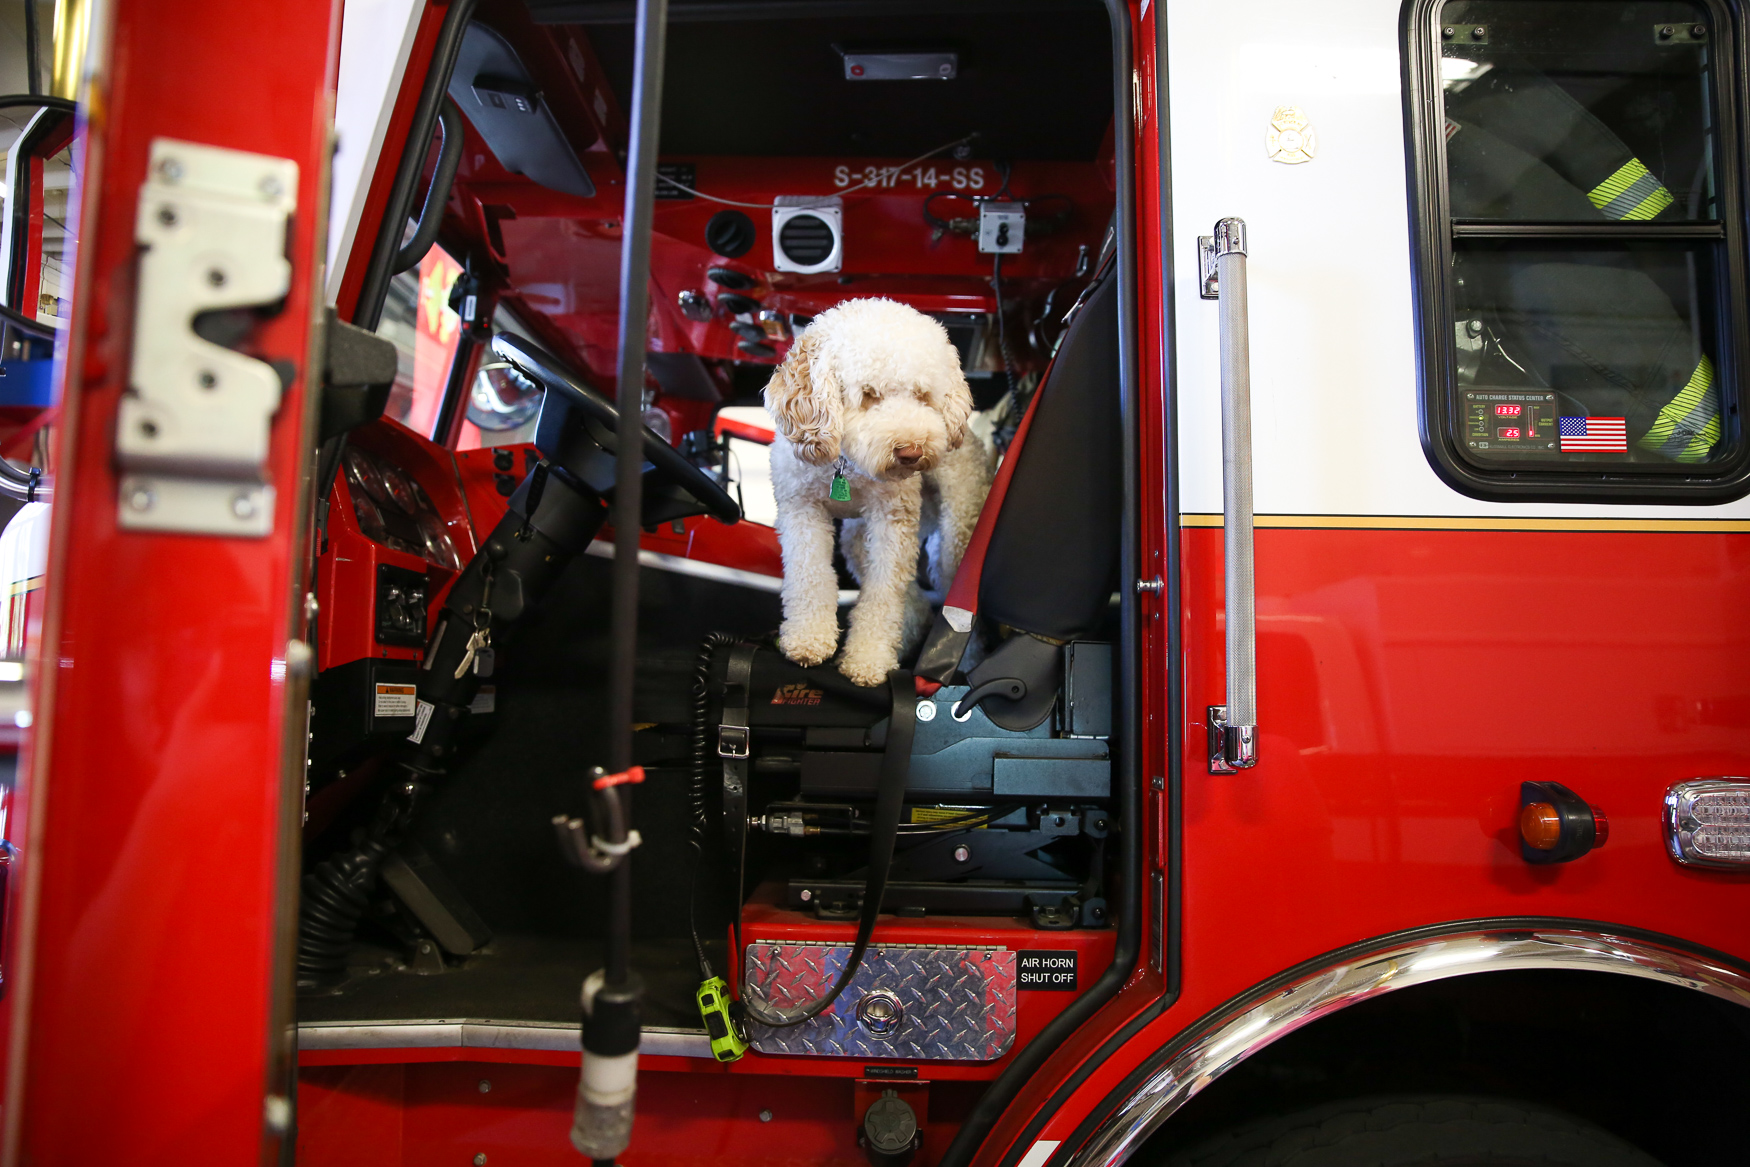 Zucca, a miniature Australian labradoodle who is just over a year old, stopped by at Engine Company 11 in Columbia Heights. He enjoyed having a ball thrown around by firefighters and EMS workers in the fire house. (Amanda Andrade-Rhoades/DC Refined)